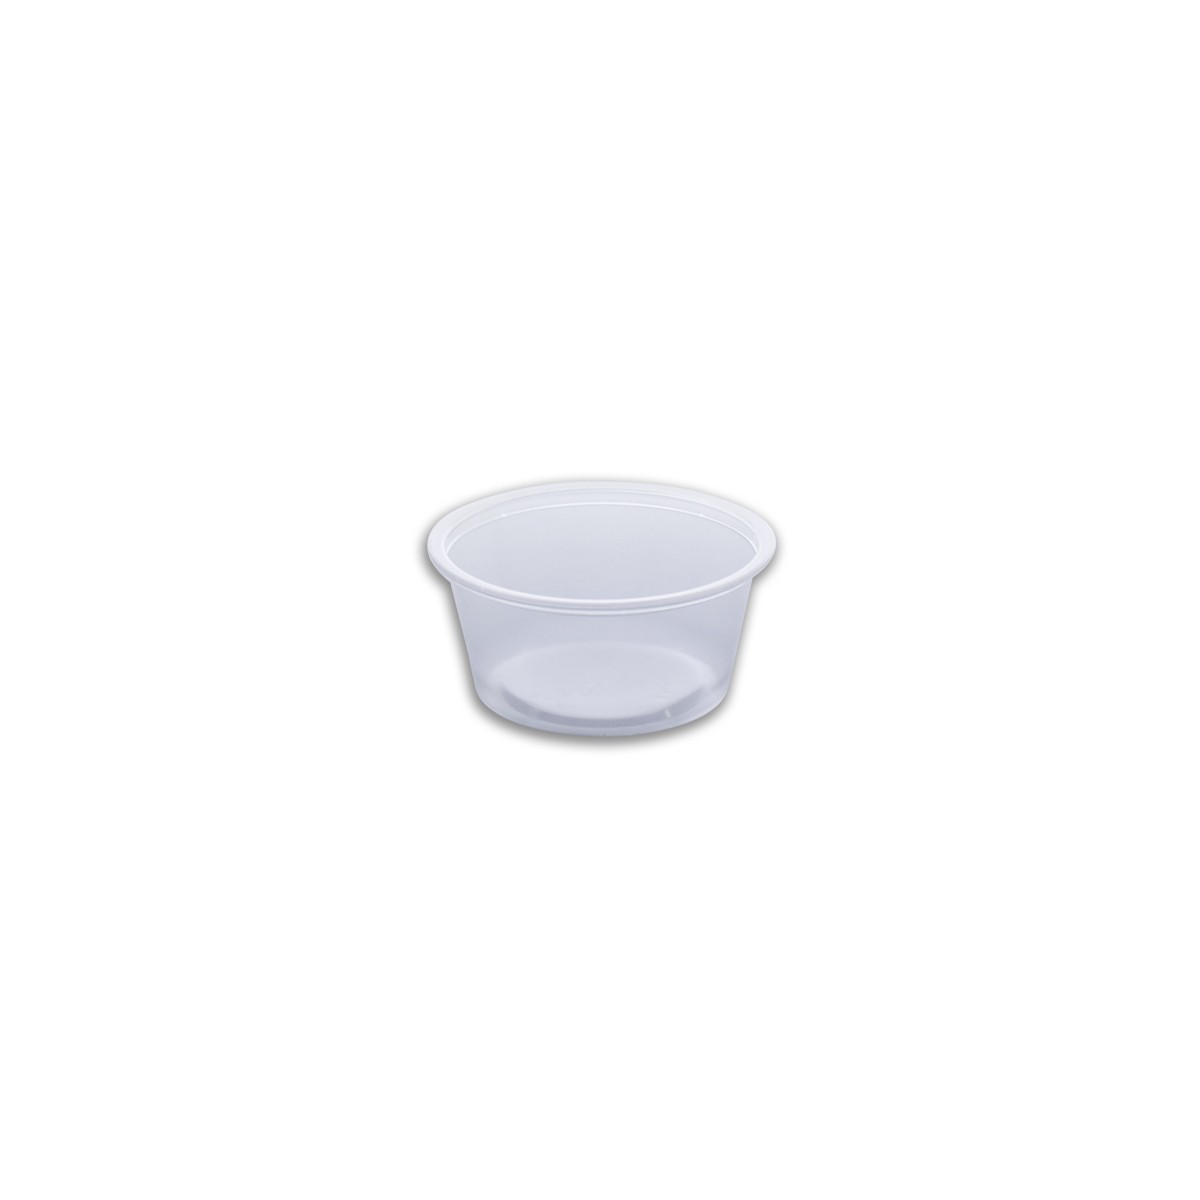 Tinypac Clear Round Portion Cup 100cc - | 2500pcs